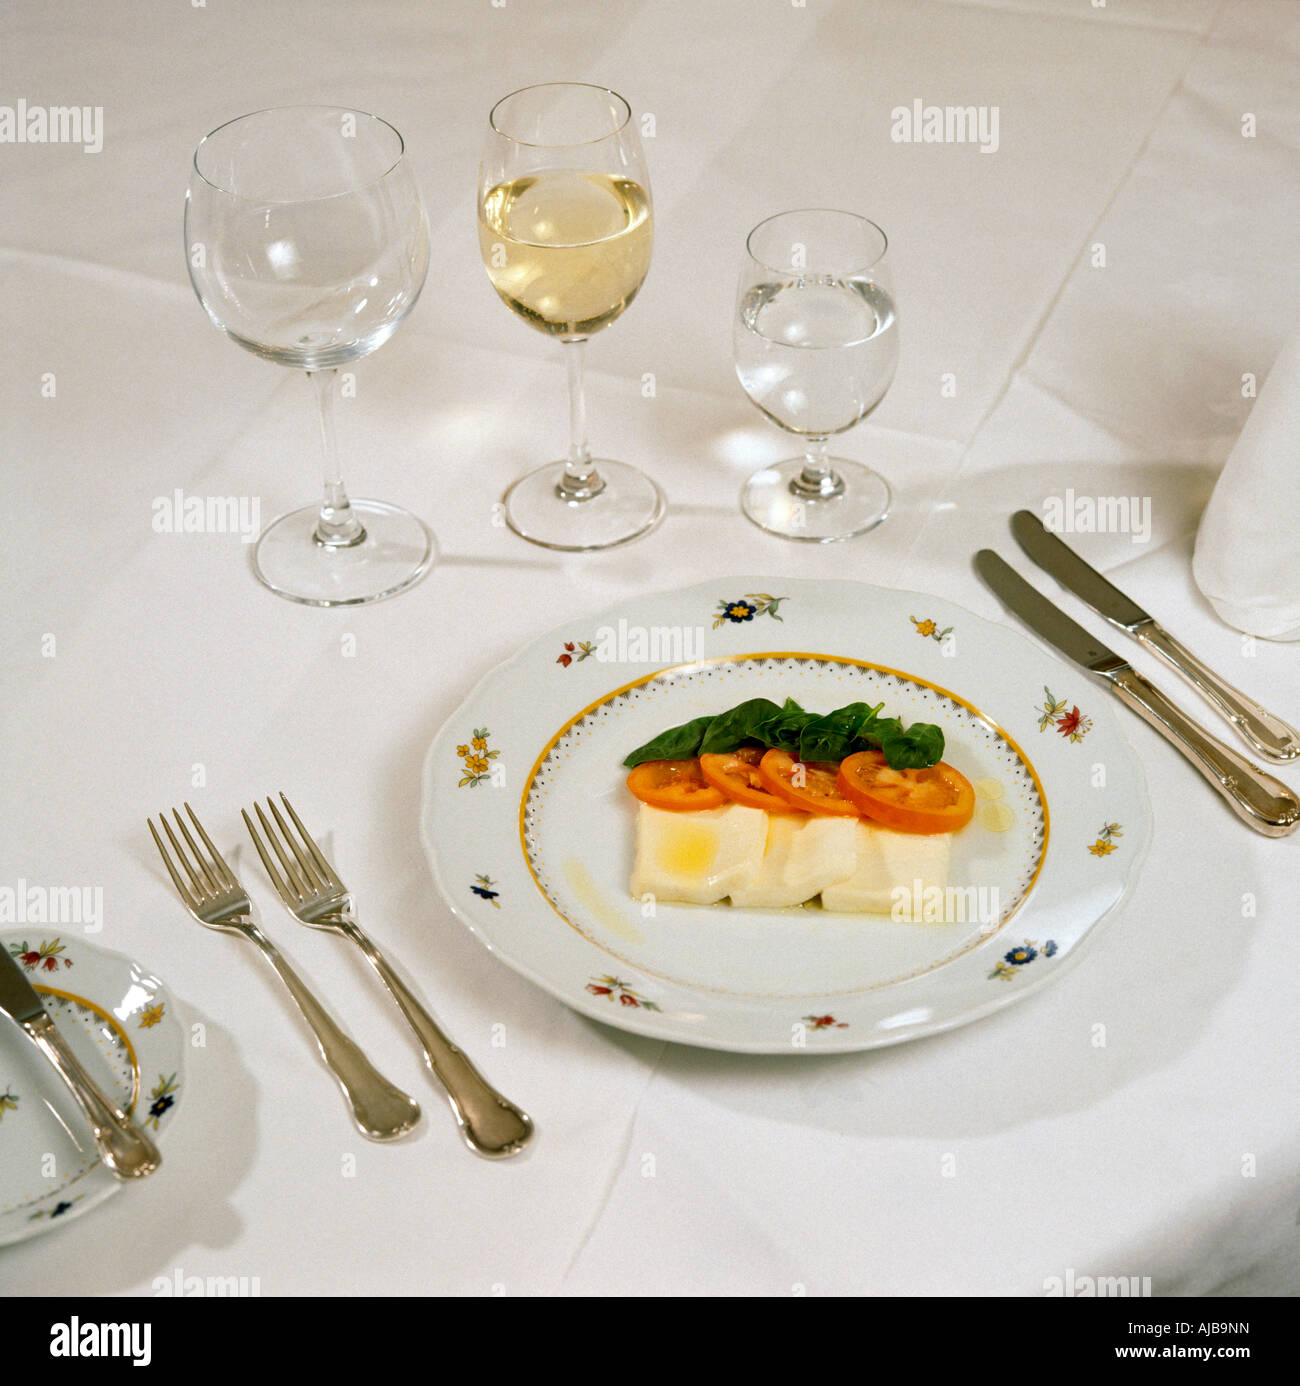 Dinner Table Setup Images: Table Setting With Silver Cutlery Laid For Dinner In